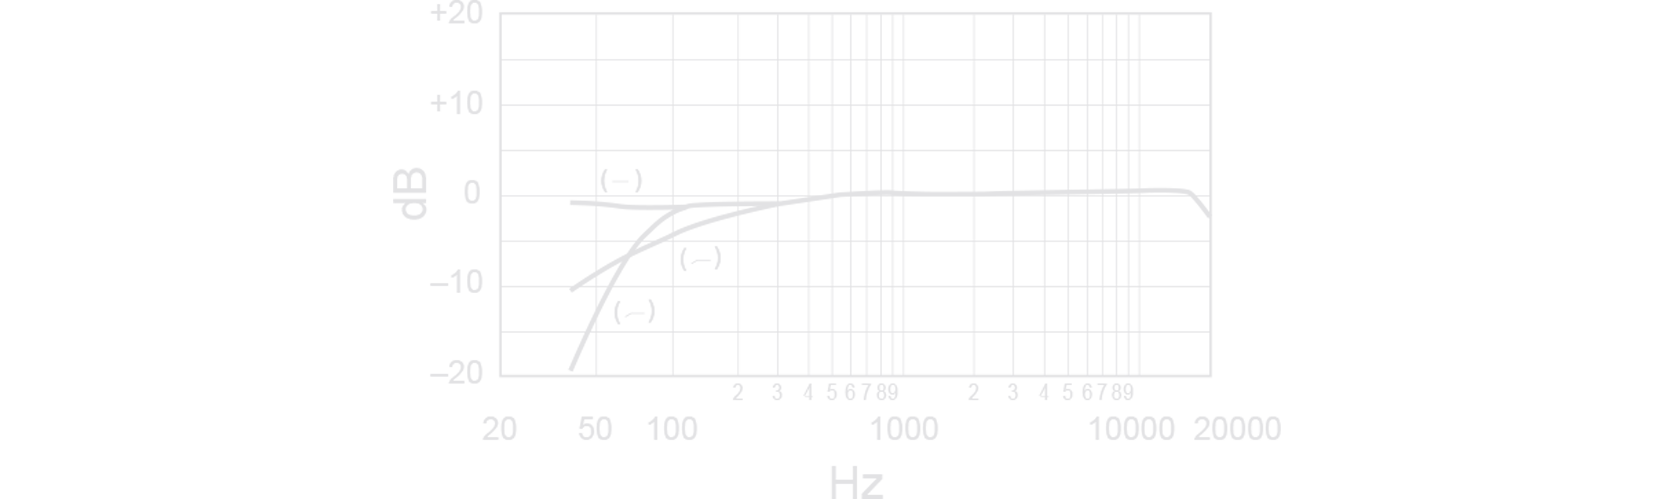 Shure SM81 condensator-instrument microfoon Frequency Response Curve Image